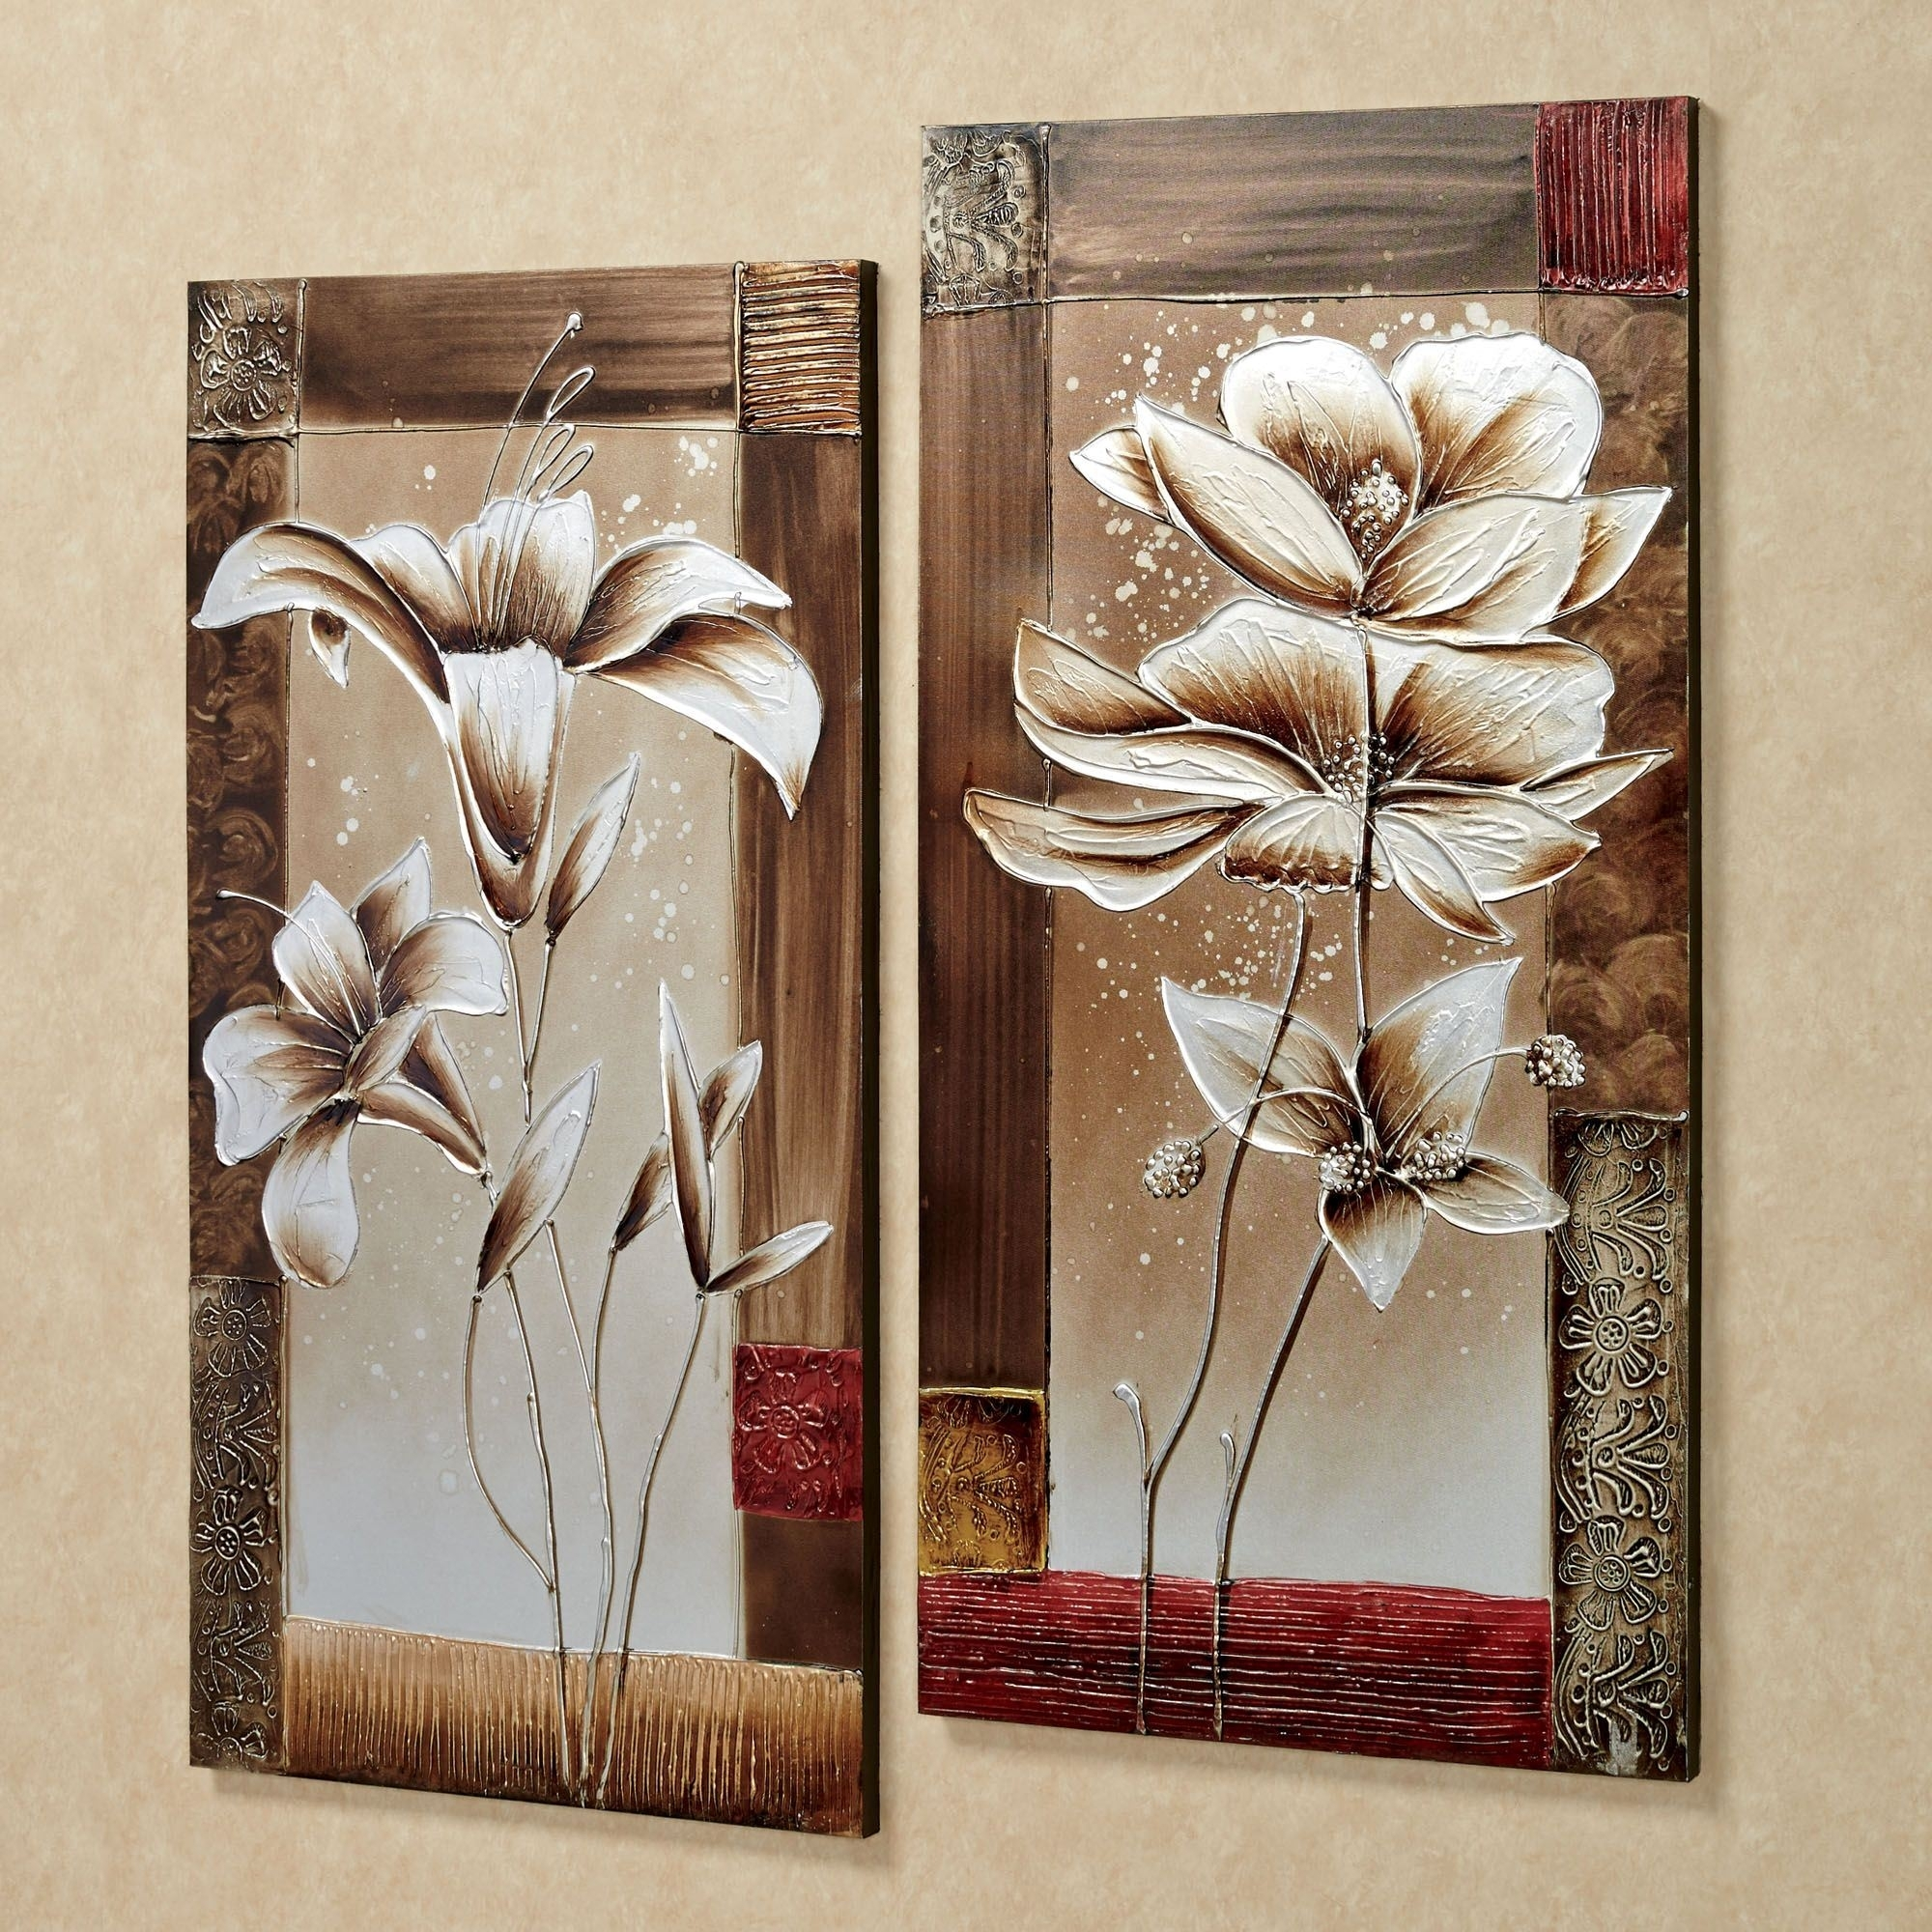 Extraordinary Framed Wall Art Sets 17 Stunning Canvas 2 Piece 3 Pertaining To Set Of 2 Framed Wall Art (View 4 of 20)